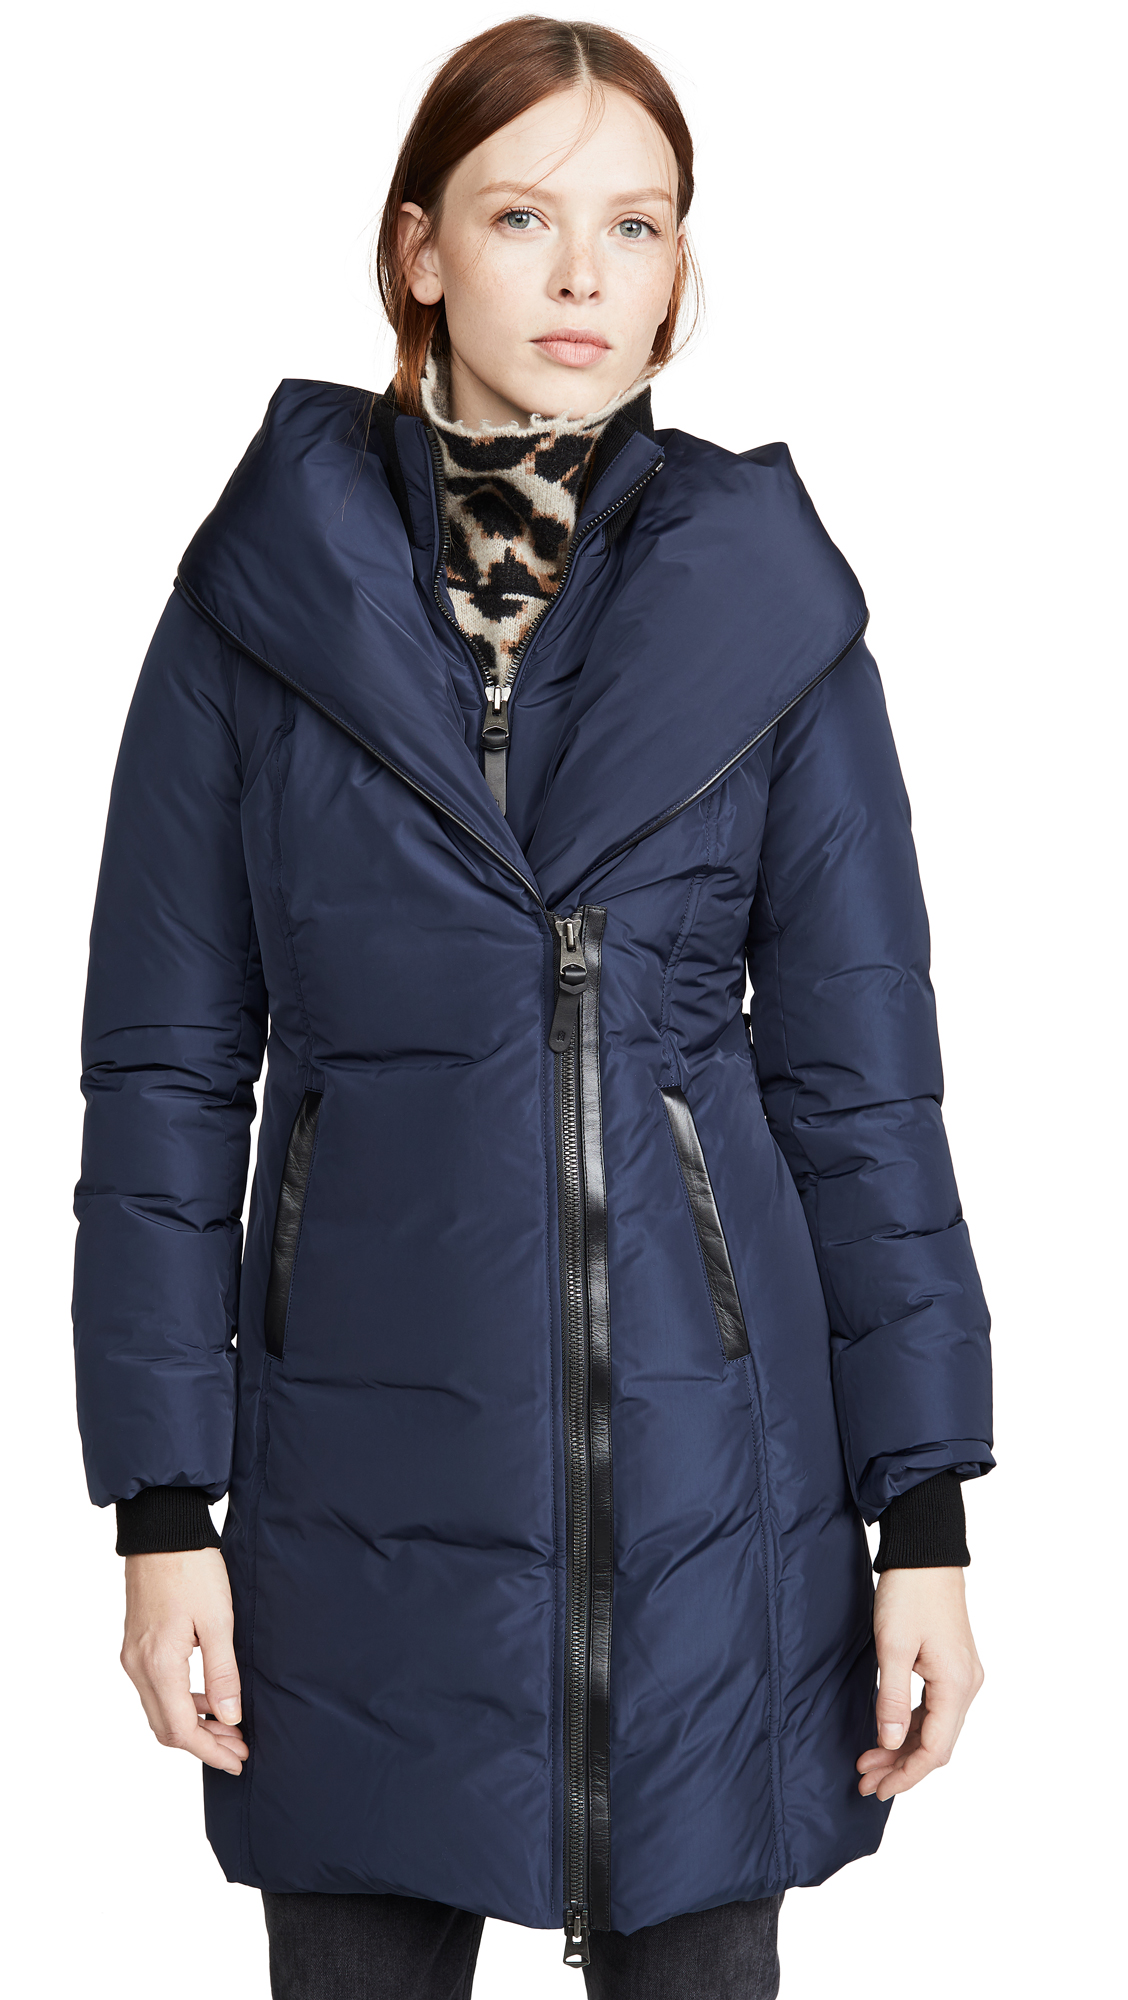 Buy Mackage Kay Jacket online beautiful Mackage Jackets, Coats, Down Jackets